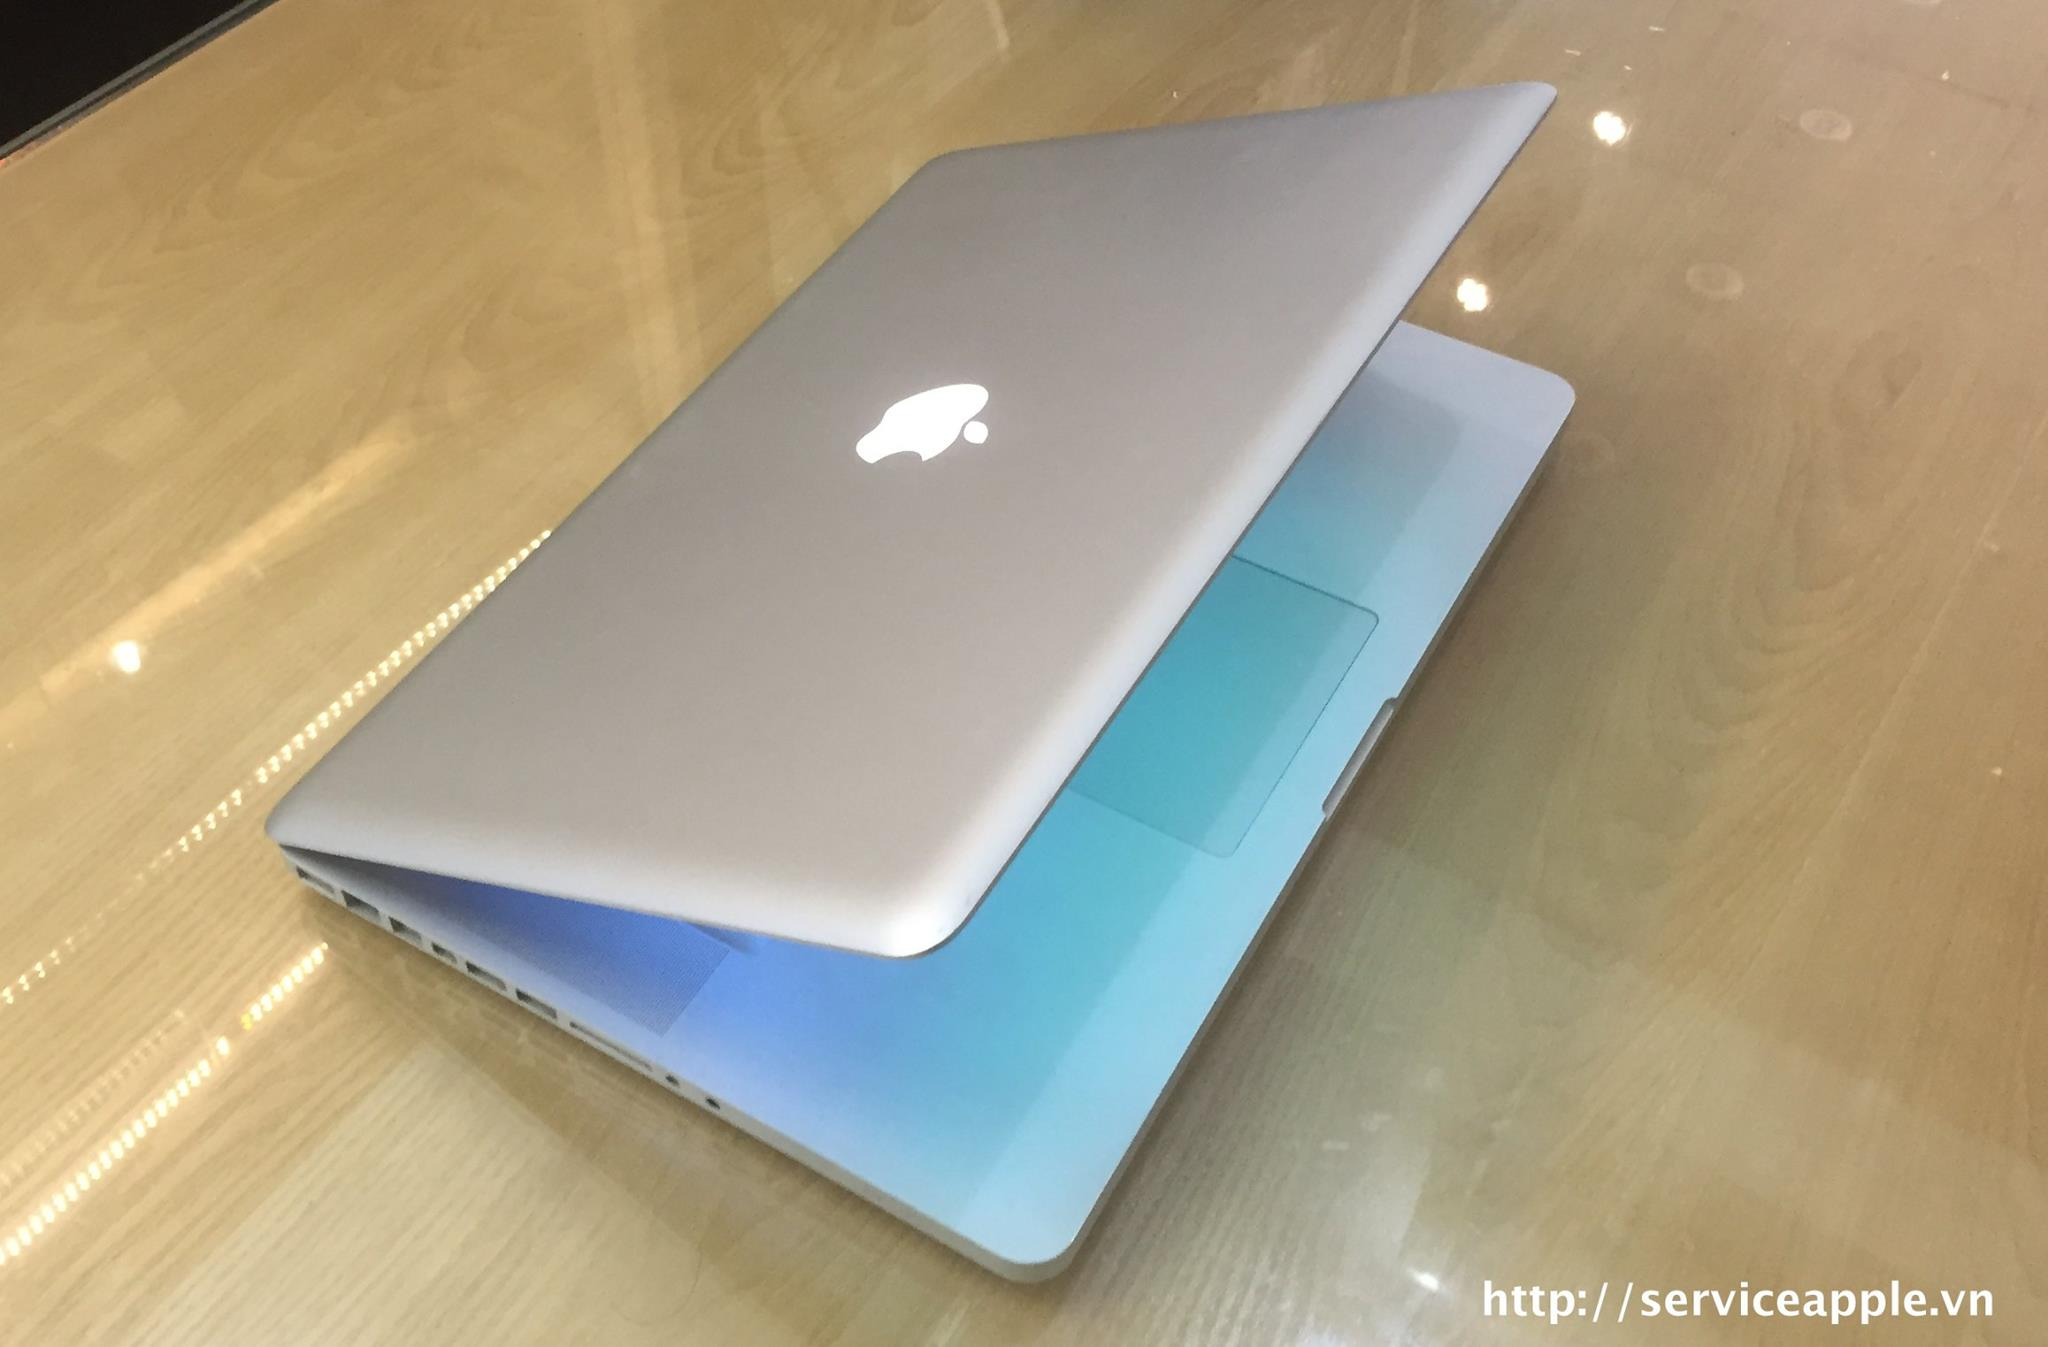 Macbook Pro A1286 MC373-7.jpg